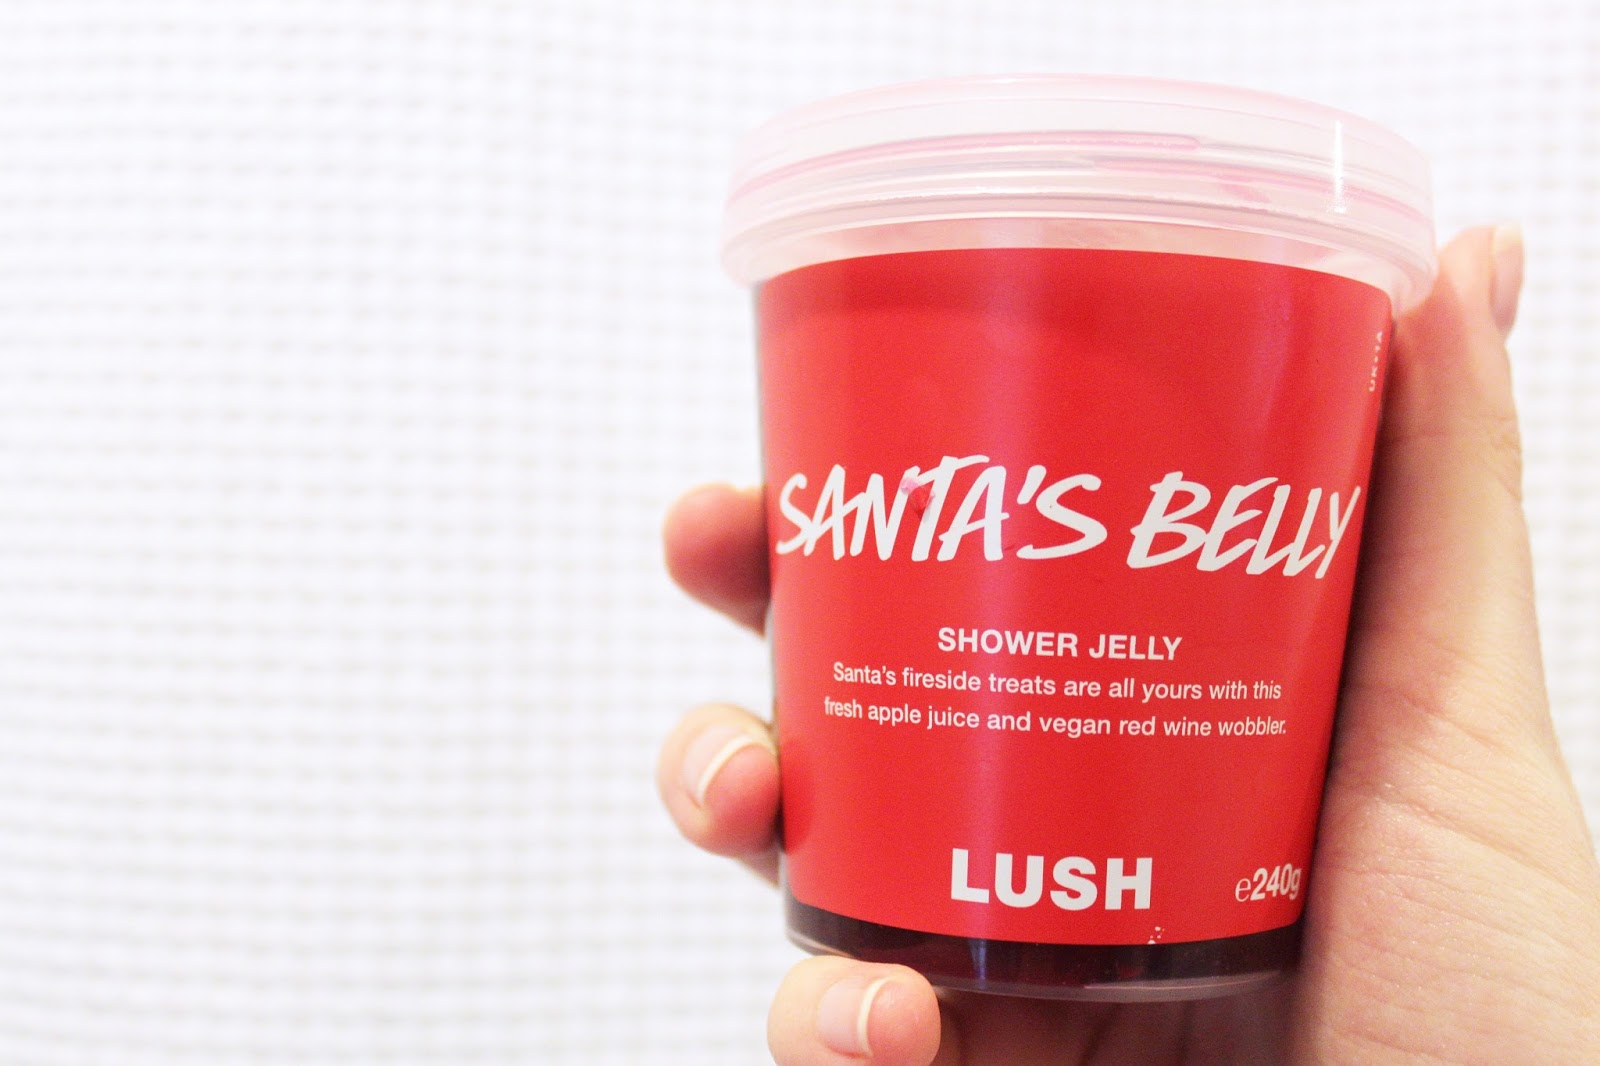 Lush Santas Belly Shower Jelly Review Hannah Delacour